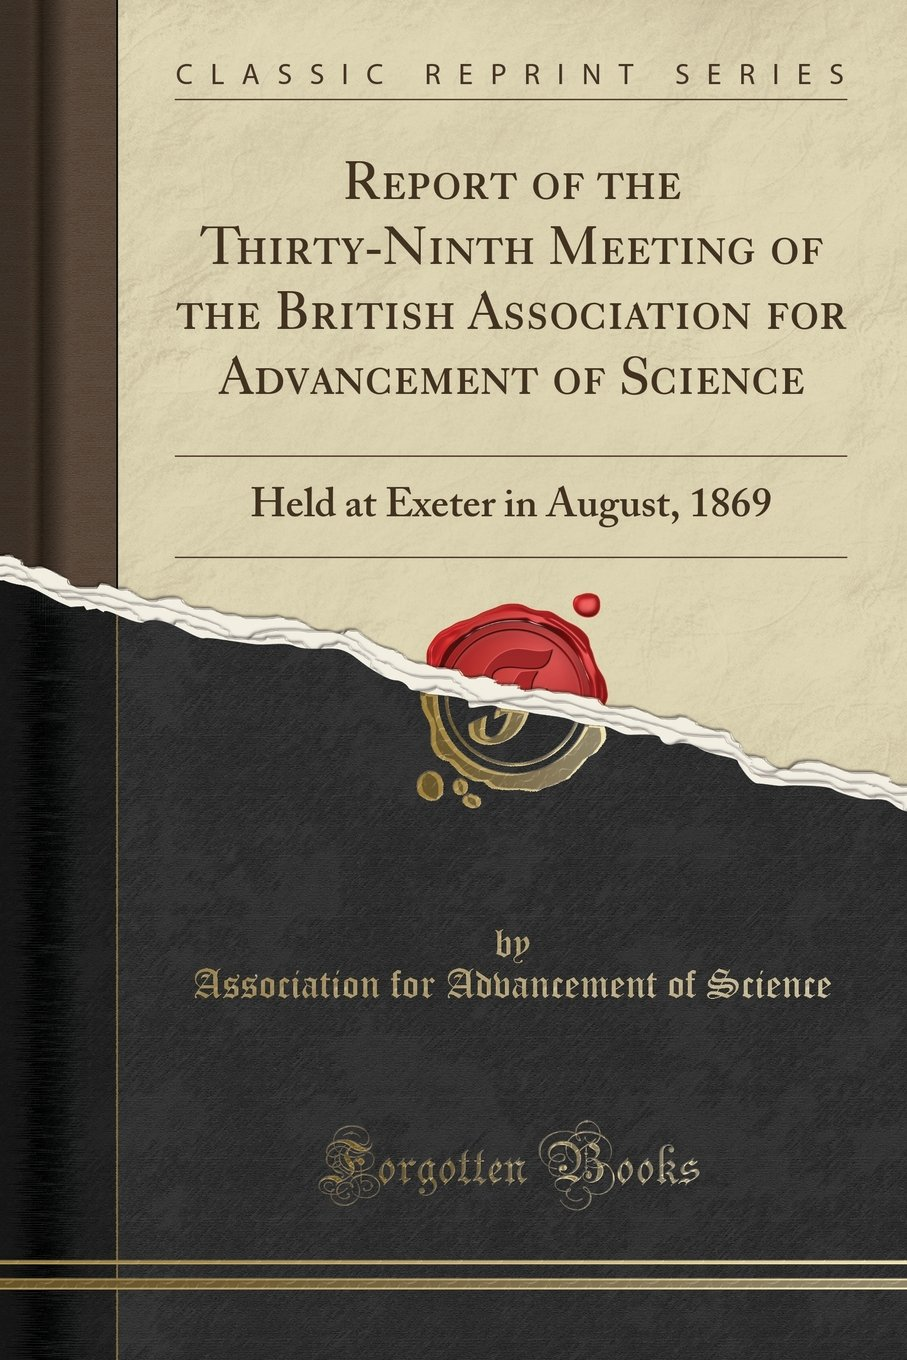 Download Report of the Thirty-Ninth Meeting of the British Association for Advancement of Science: Held at Exeter in August, 1869 (Classic Reprint) PDF